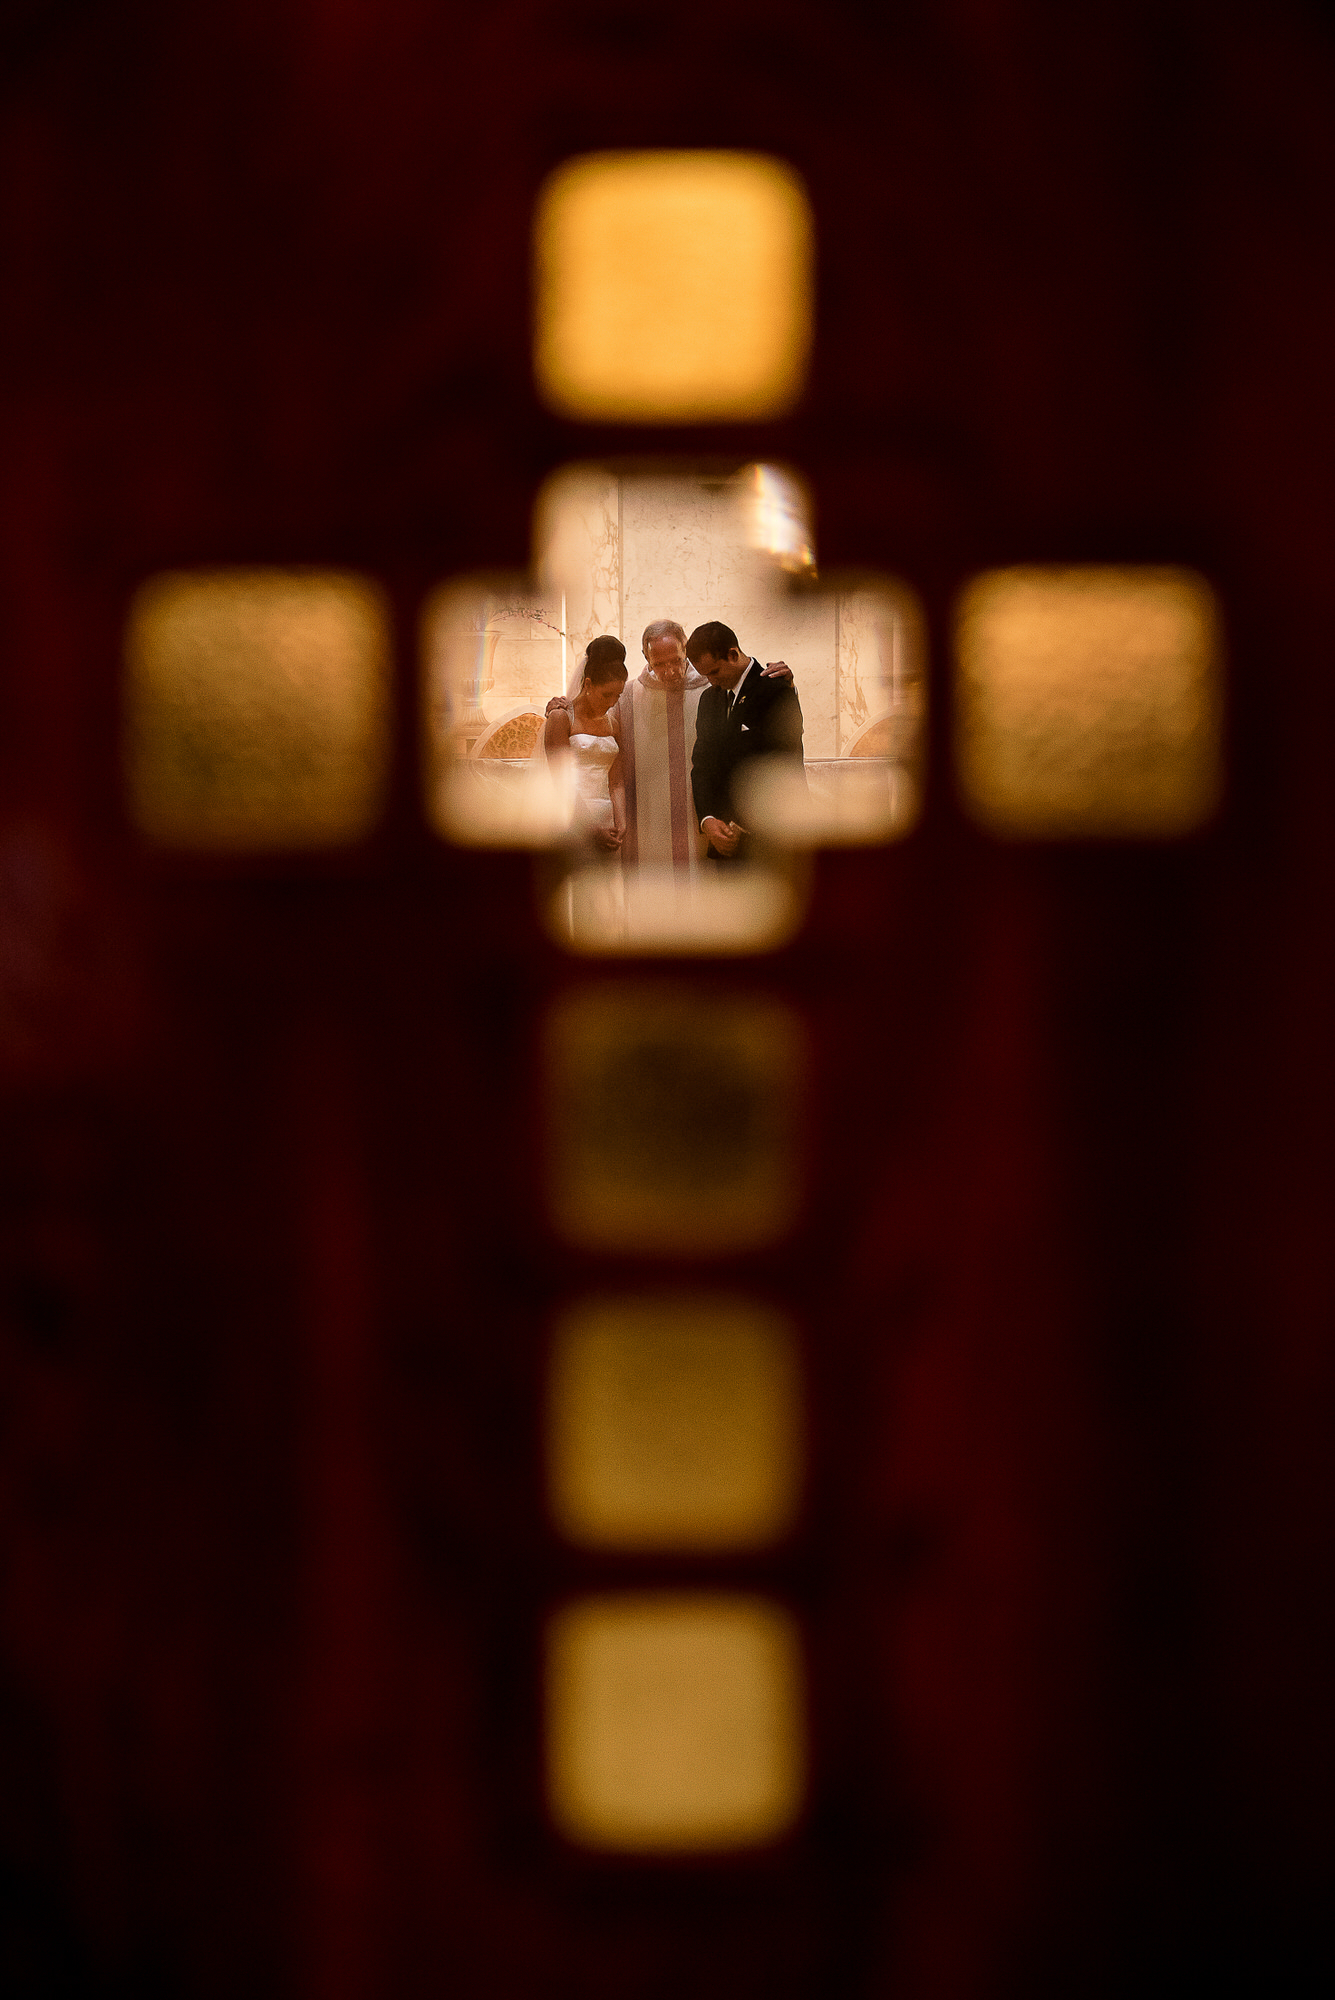 Ceremony blessing through cross window - photo by Tyler Wirken  - Kansas City